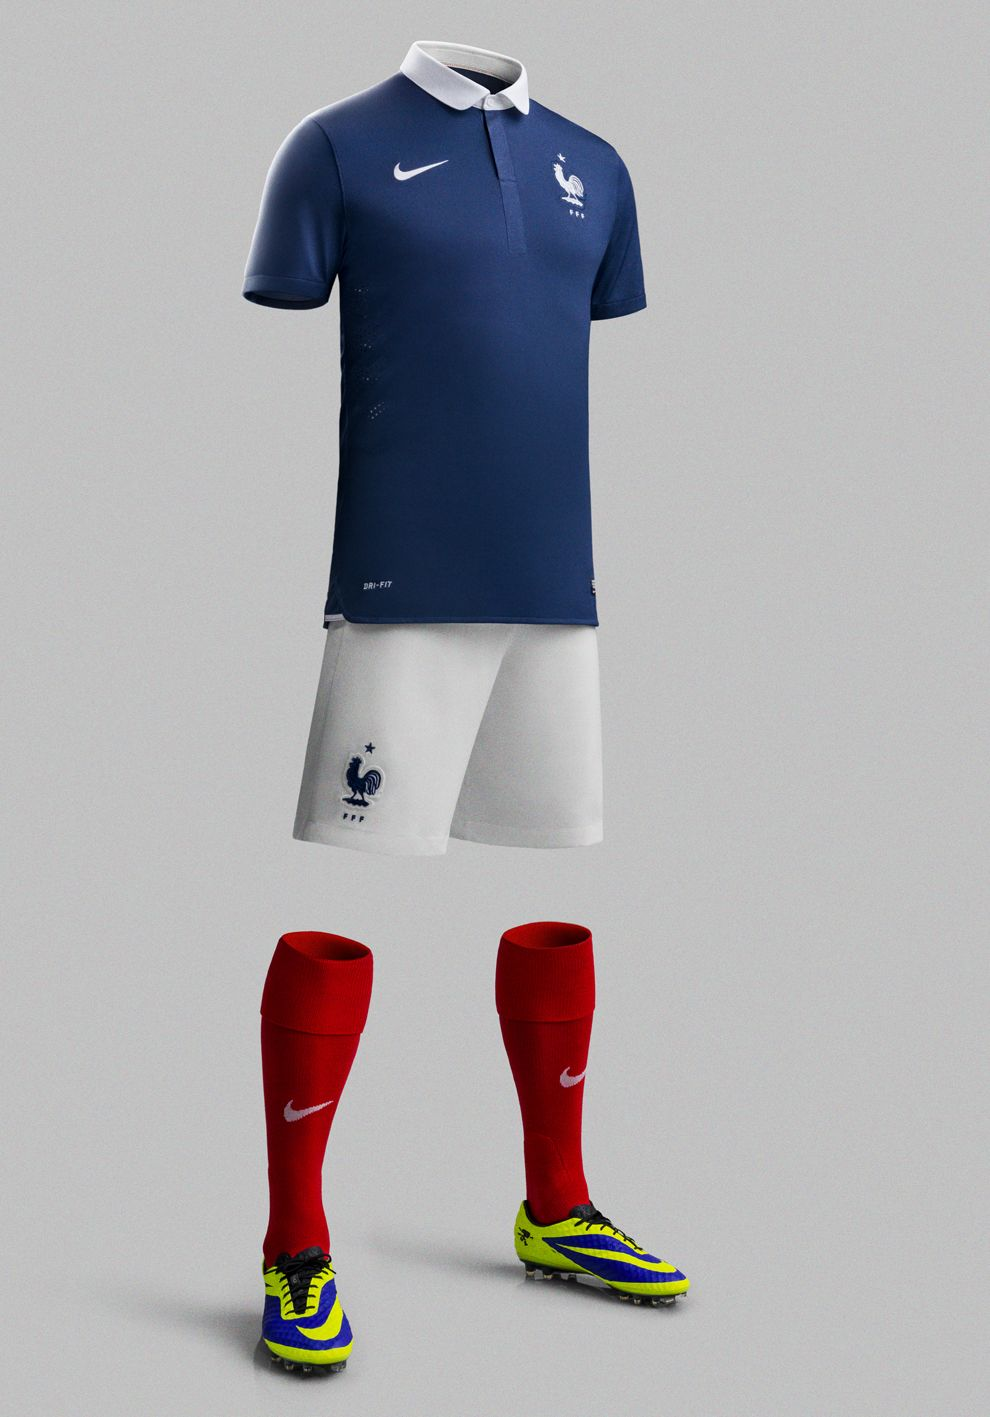 6a1eac281 France National Football Team Kit for 2014 x Nike